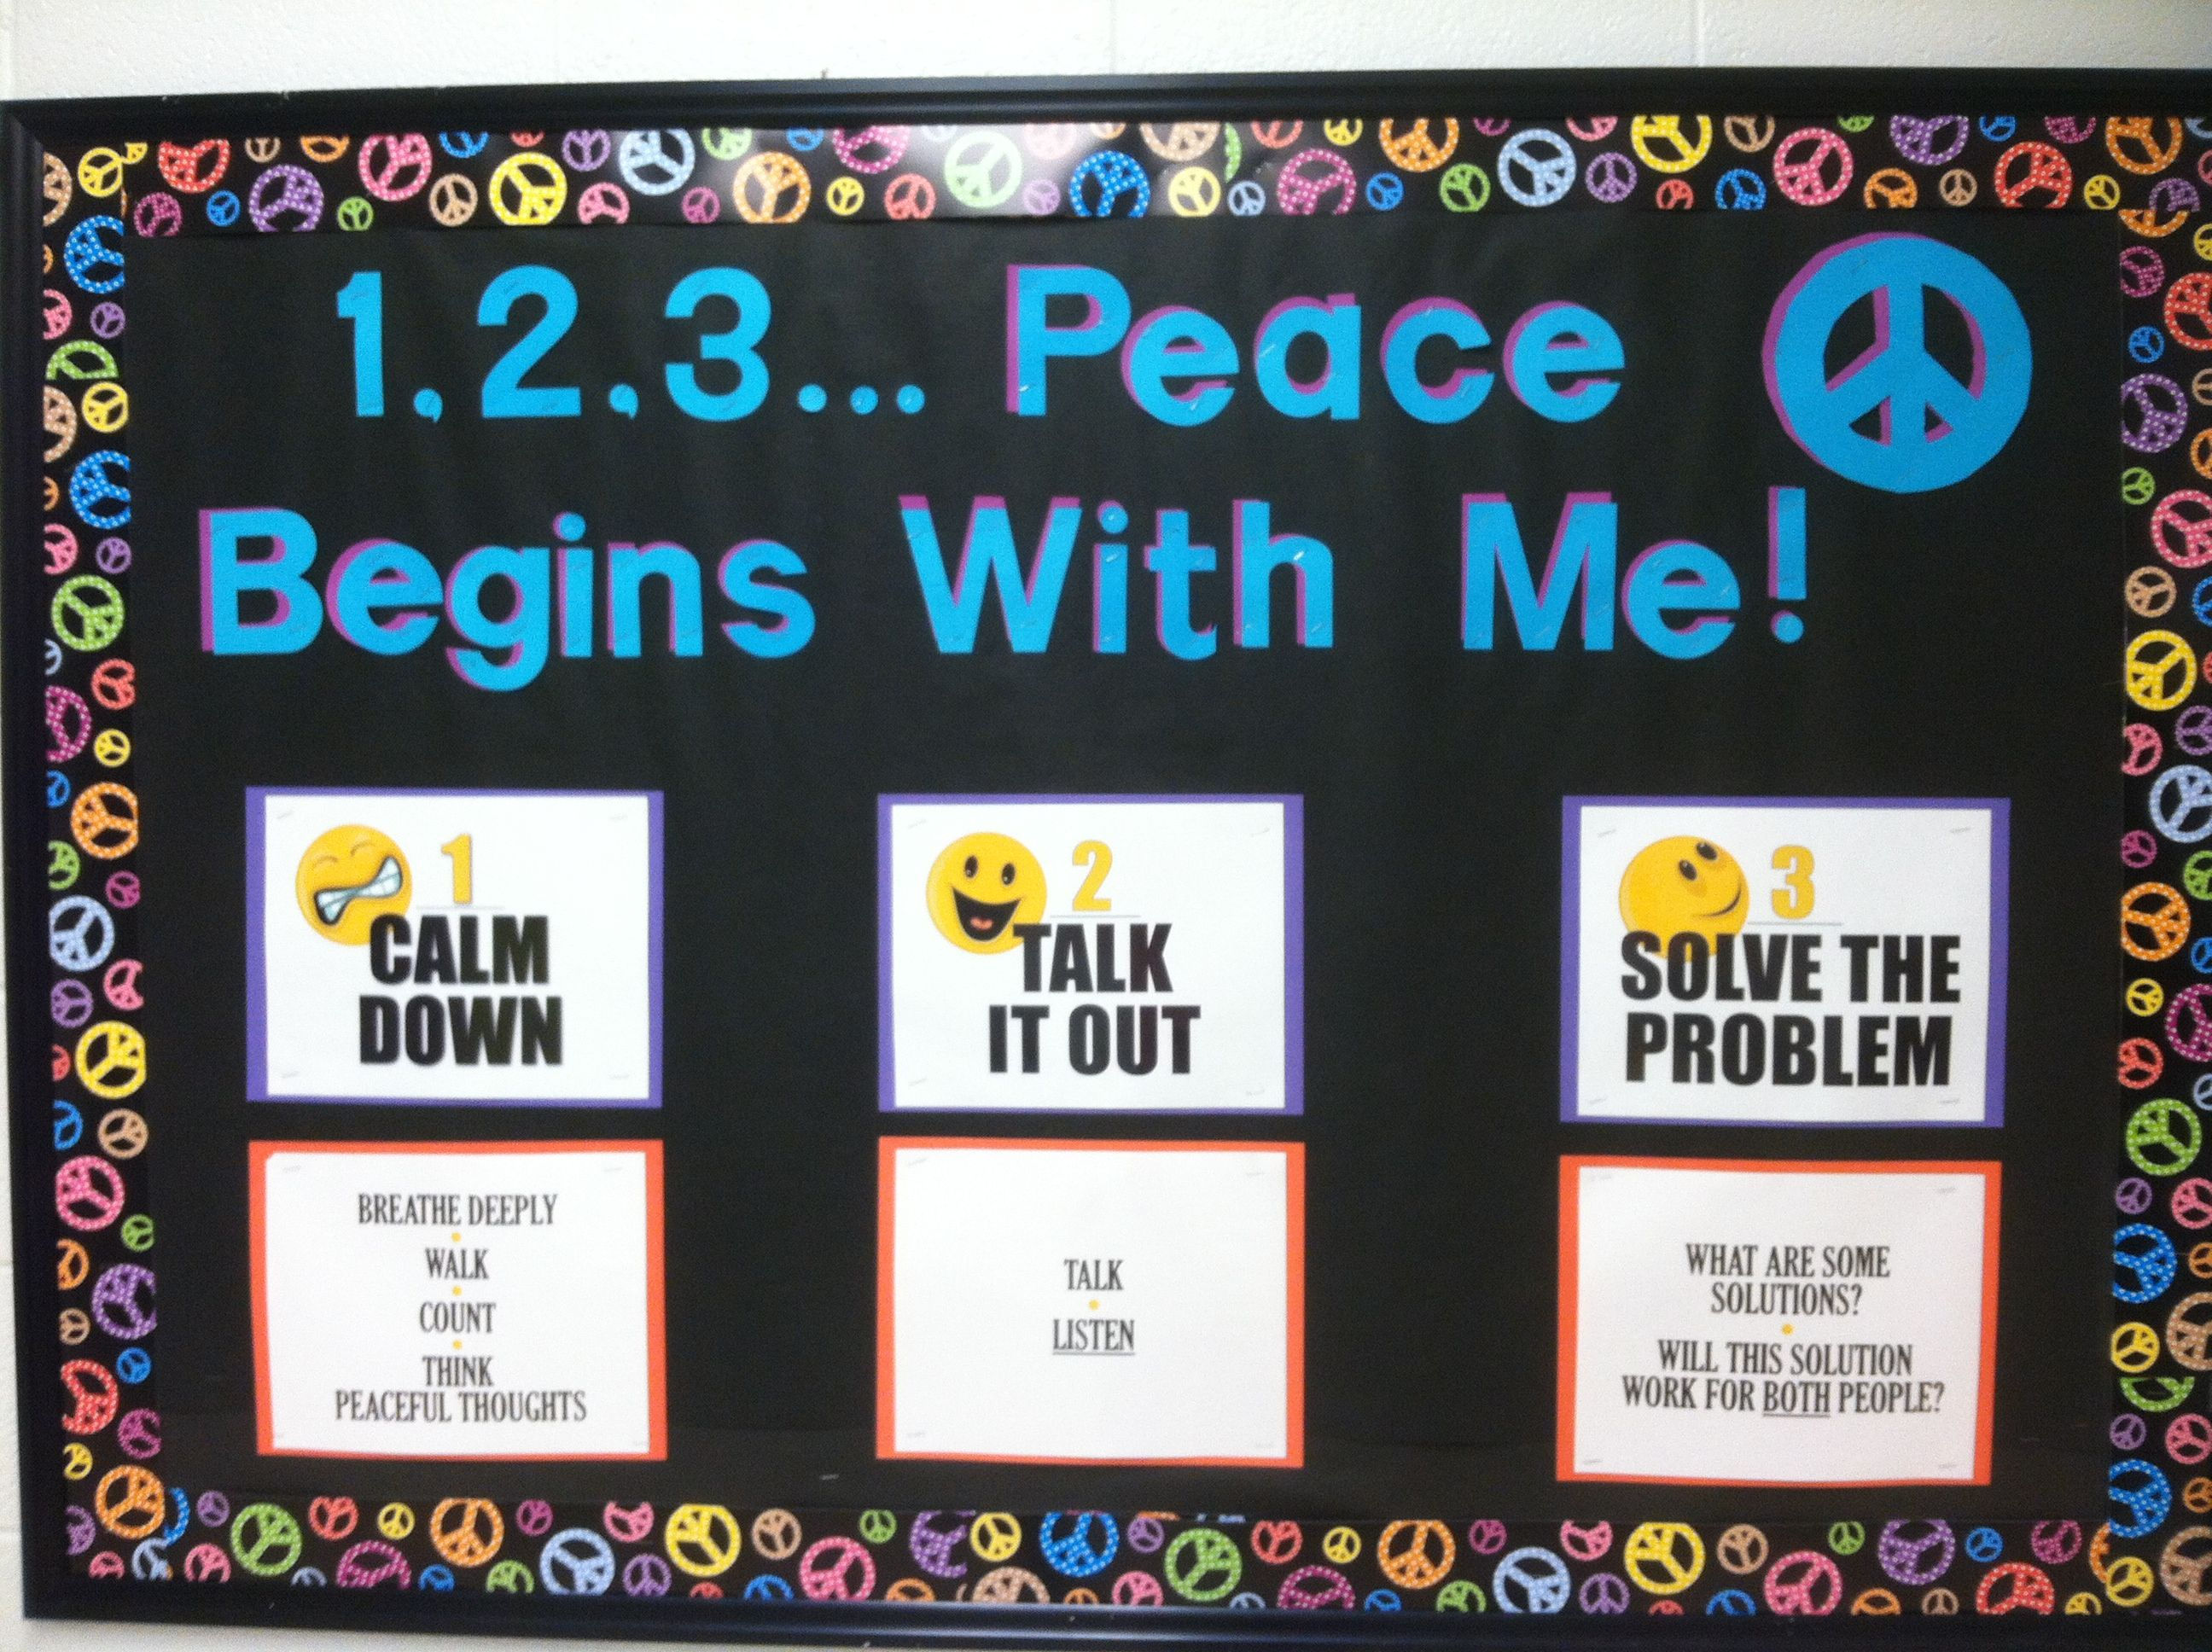 Peaceful conflict resolution bulletin board meant for elementary peaceful conflict resolution bulletin board meant for elementary but edinboro could use this campus beefh fandeluxe Images